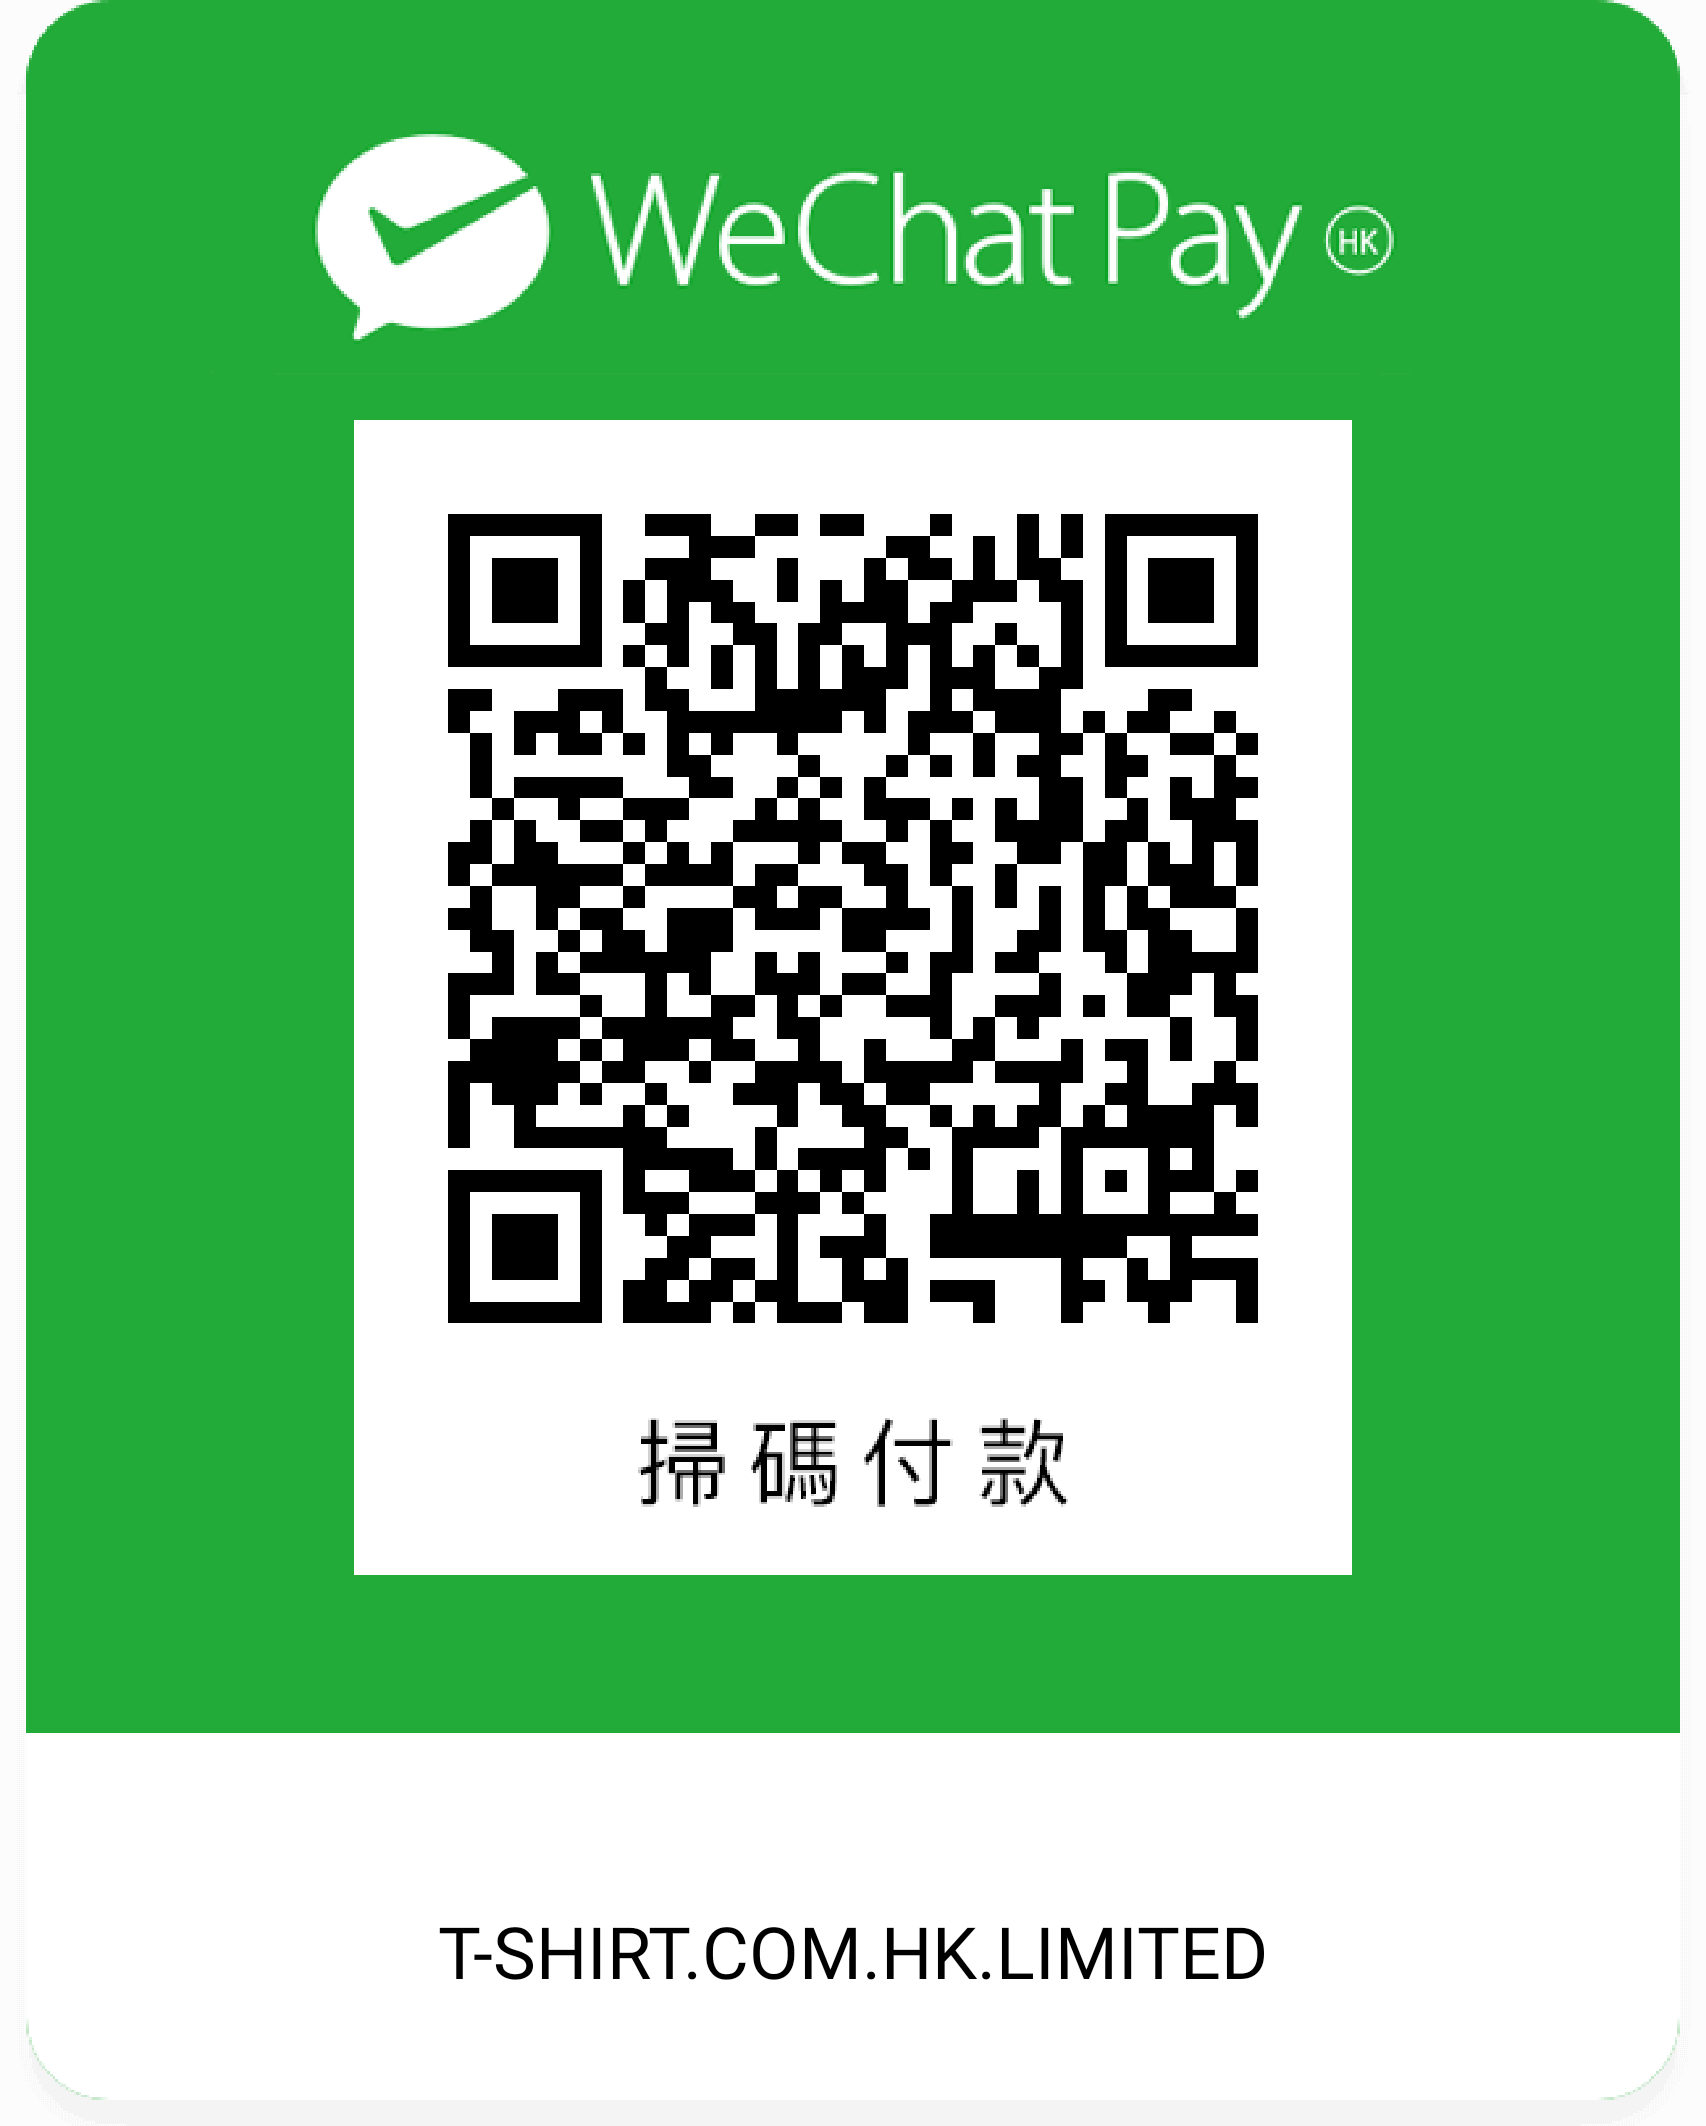 WeChatPay Payment Method